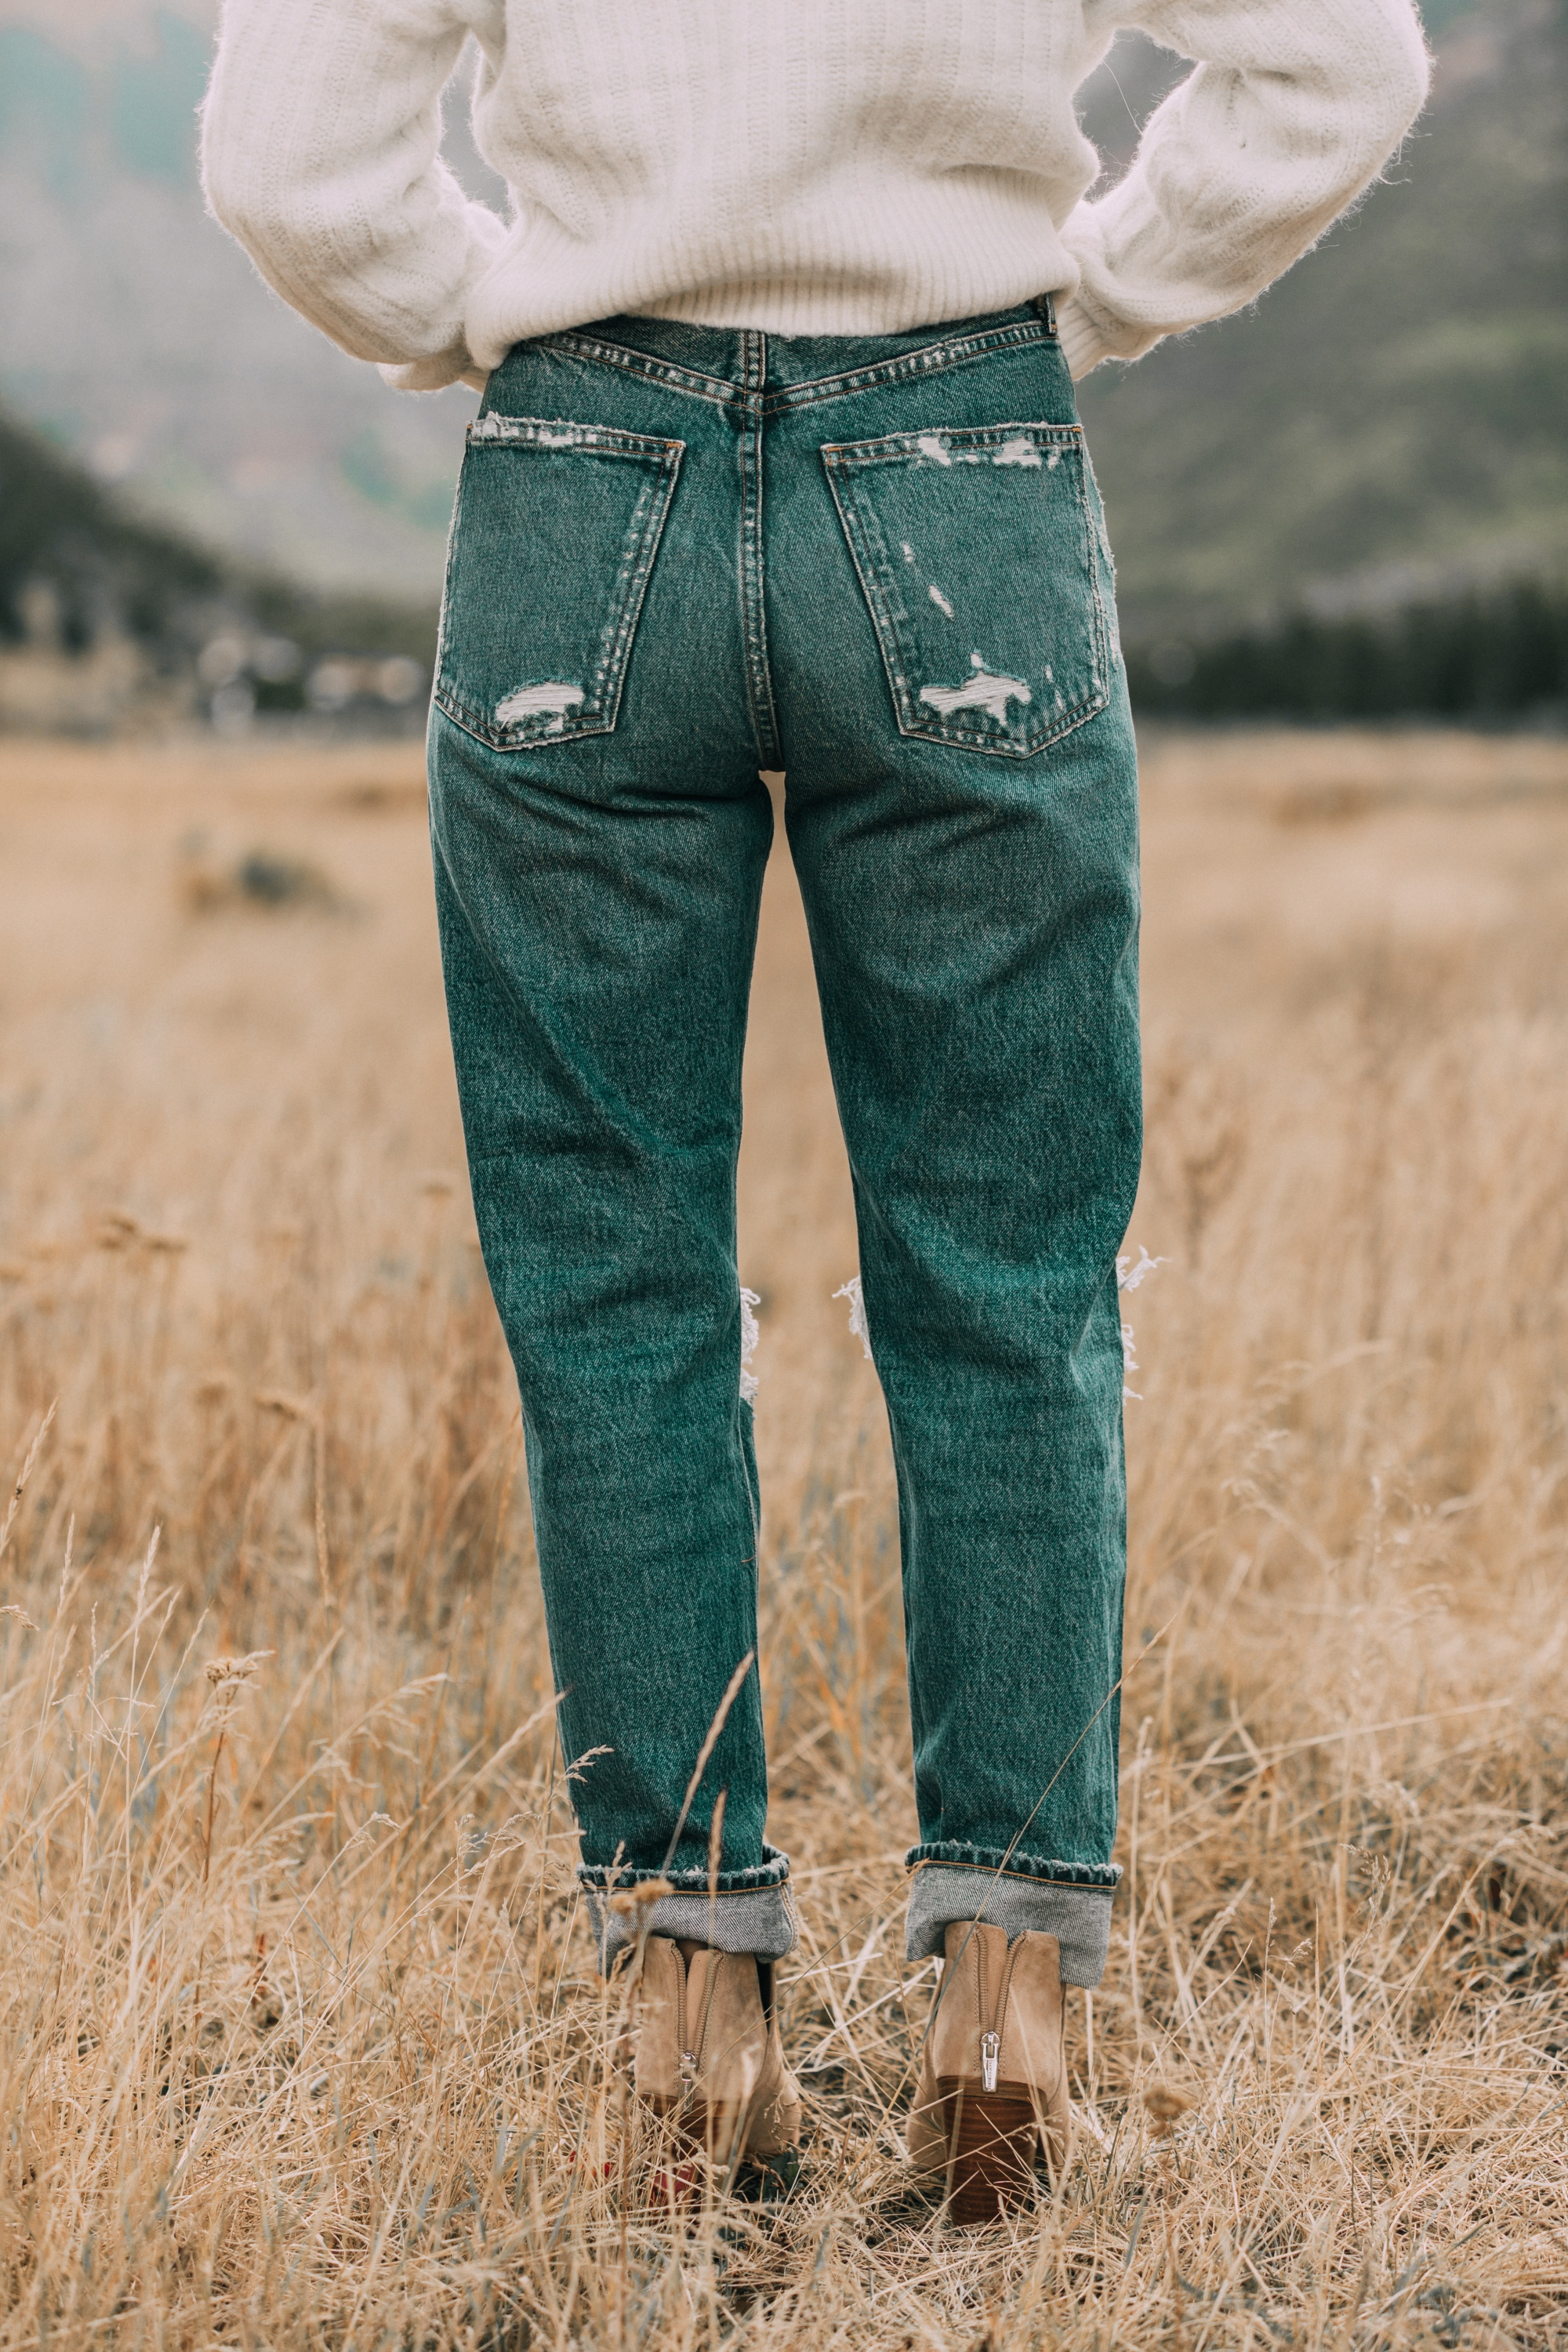 Baggy Jeans trend, Fashion blogger Busbee Style wearing Agolde baggy oversized jeans with Sam Edelman booties, white Express cable knit sweater in Telluride, CO